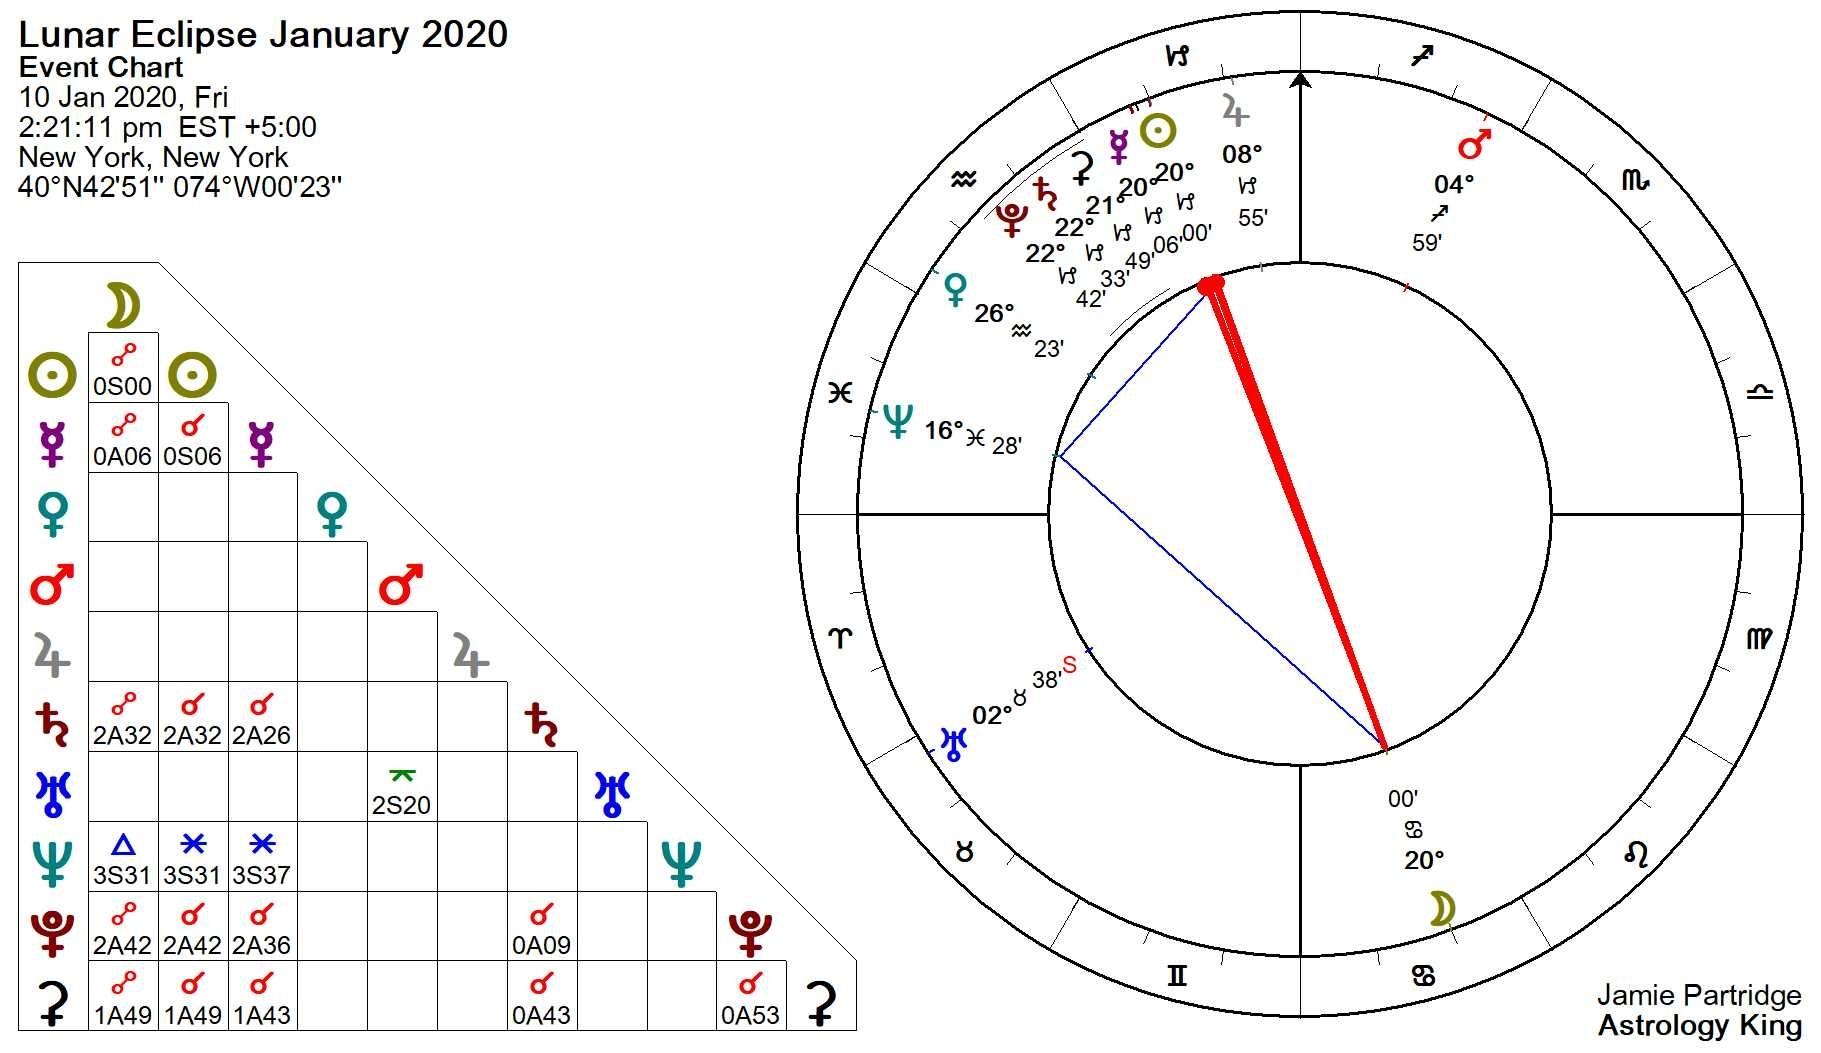 Lunar Eclipse January 2020 – Tyranny And Oppression